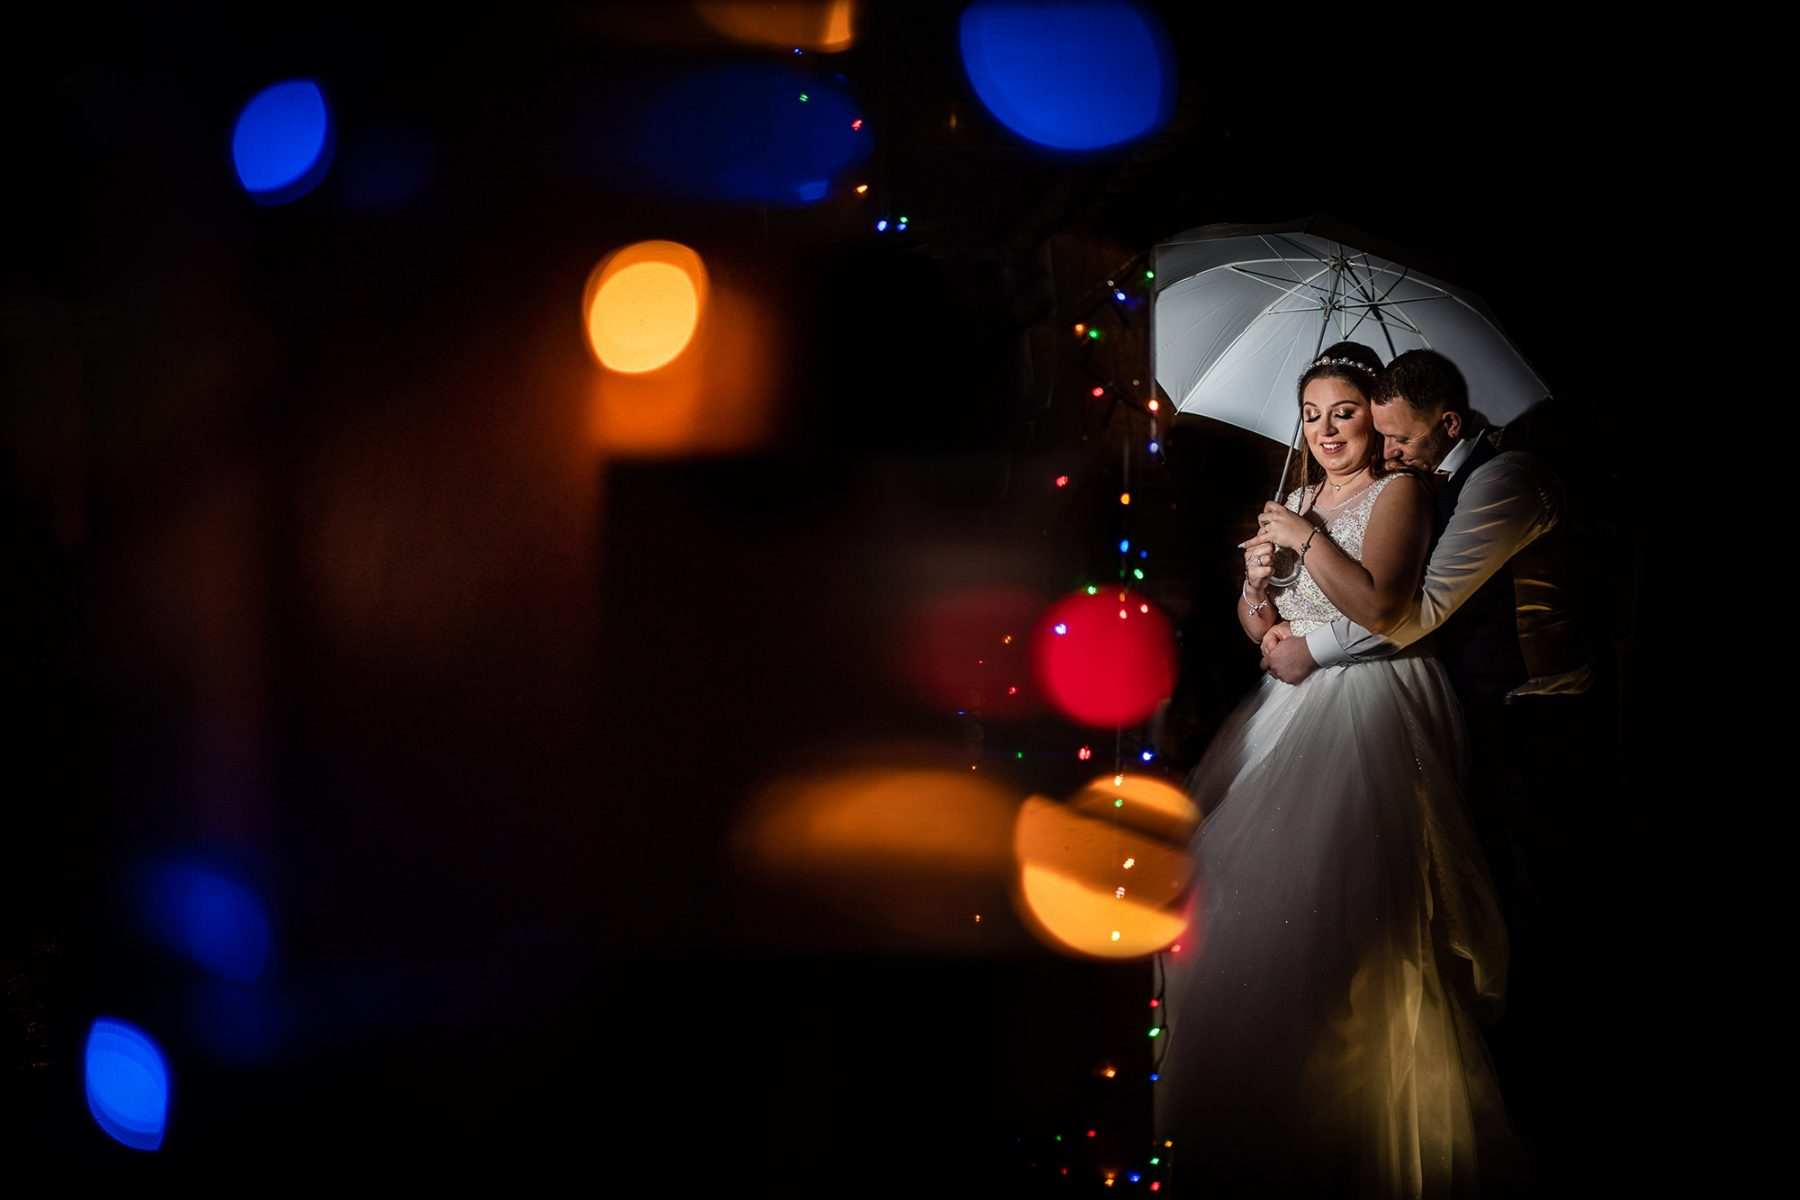 A creative off camera flash photograph of the bride and groom in the rain